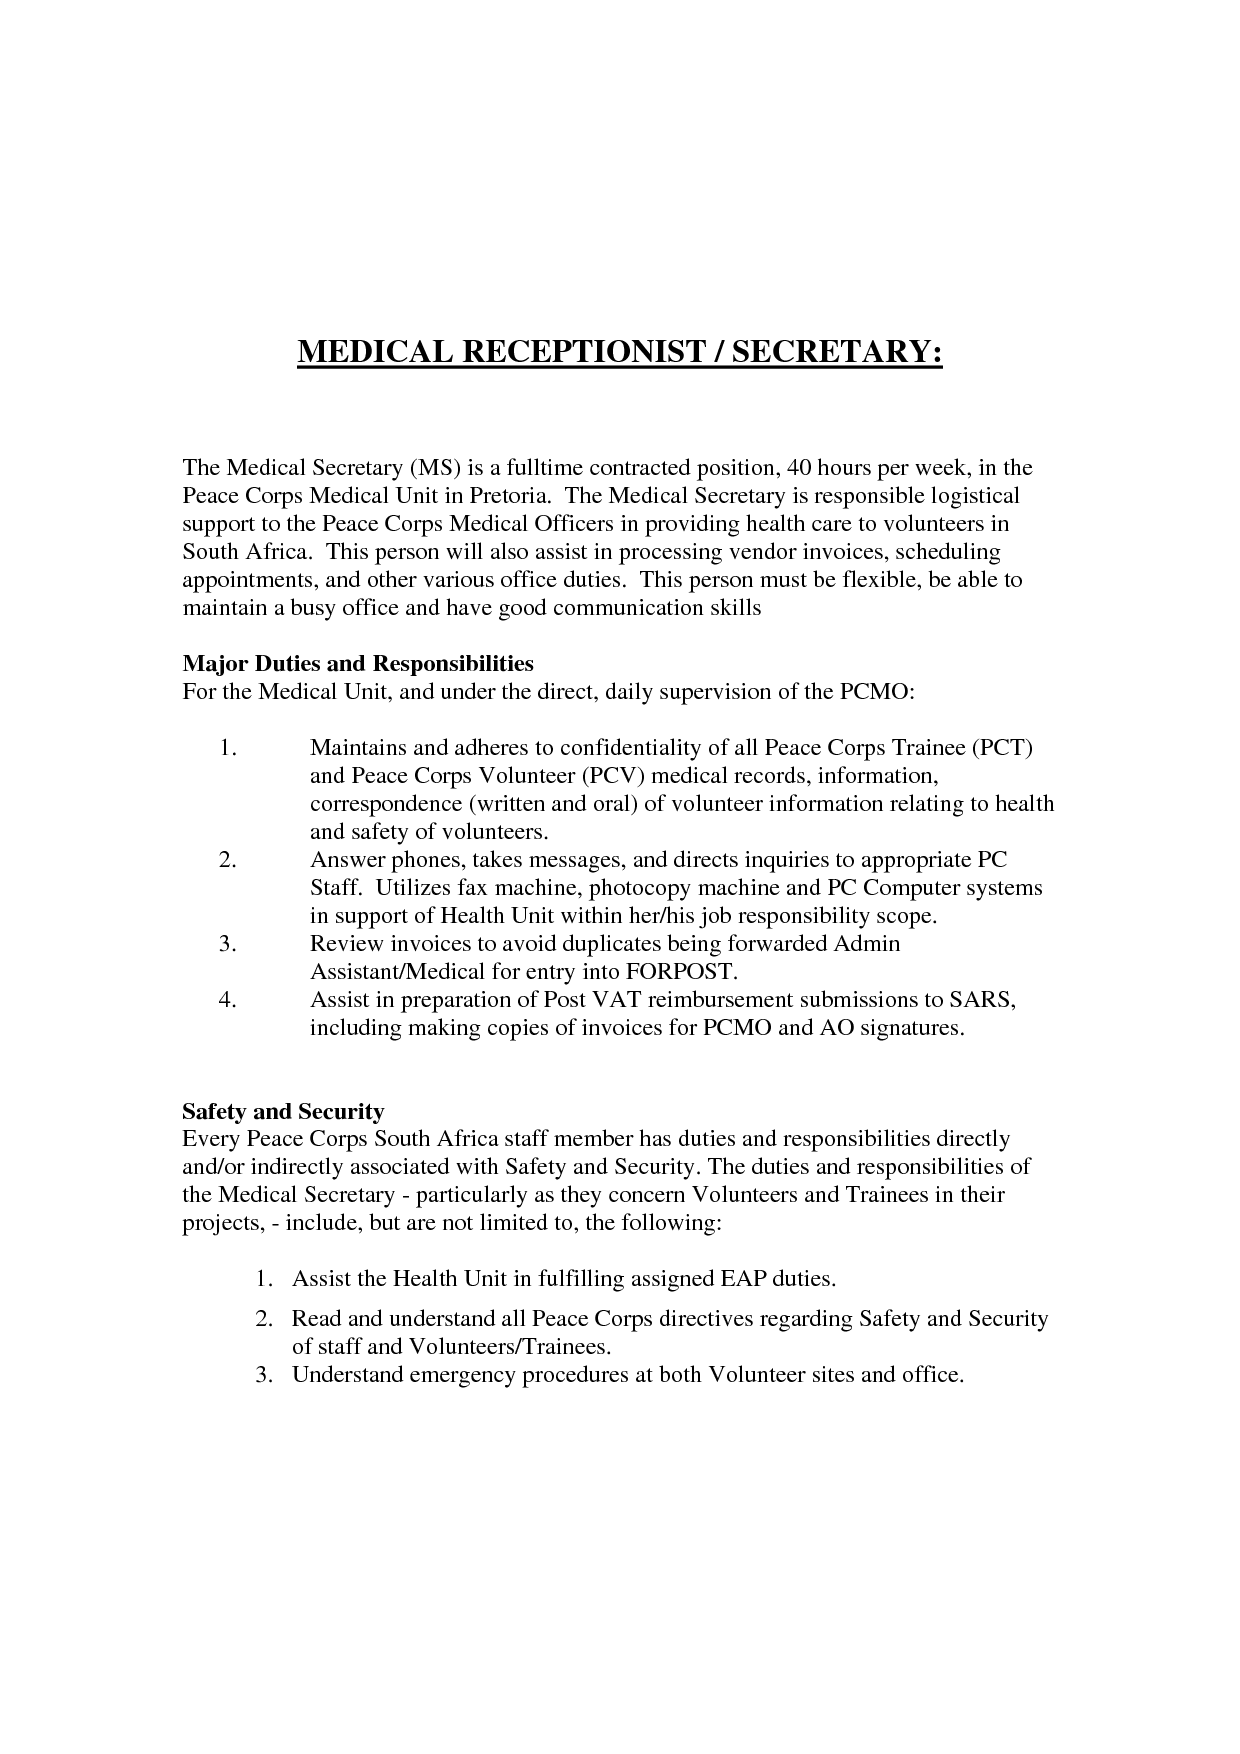 Cover Letter For Receptionist Dental Office Job Application With